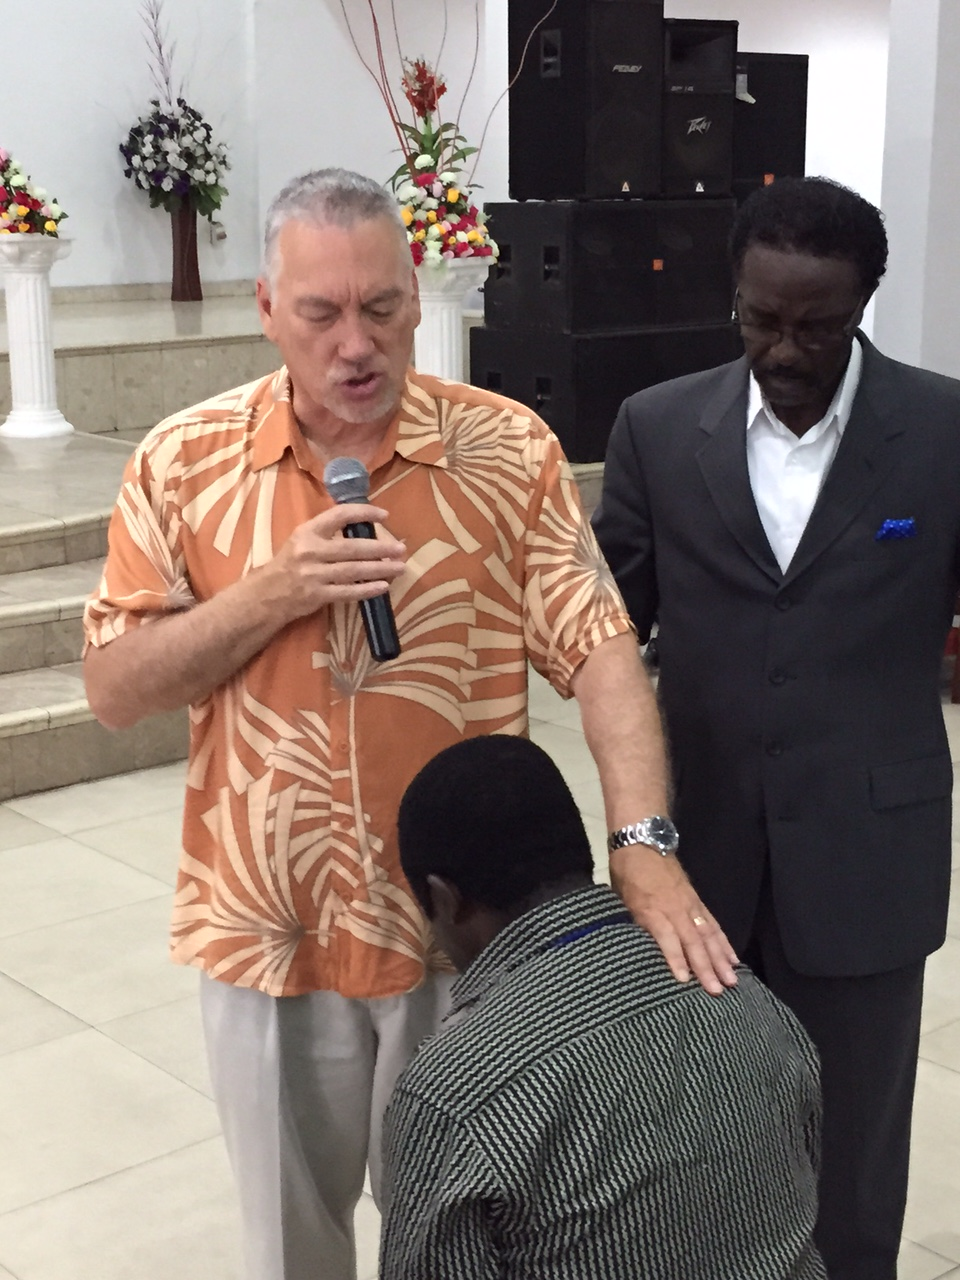 Man praying, another man standing over him with hand on shoulder